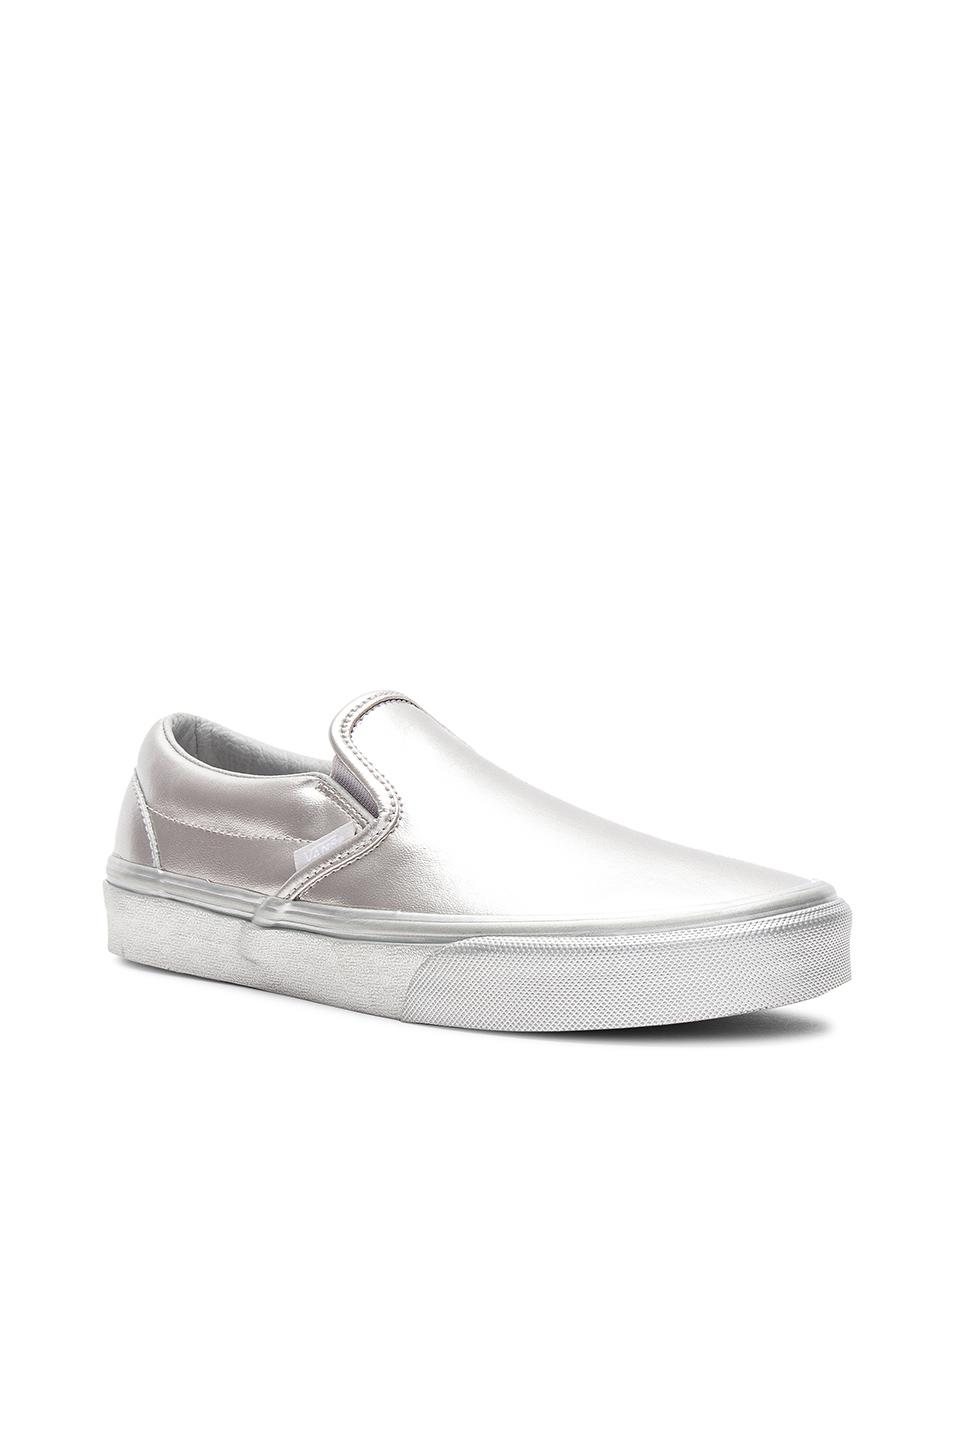 e285a4da239e Lyst - Vans Classic Slip-on Women s Shoes (trainers) In Silver in ...